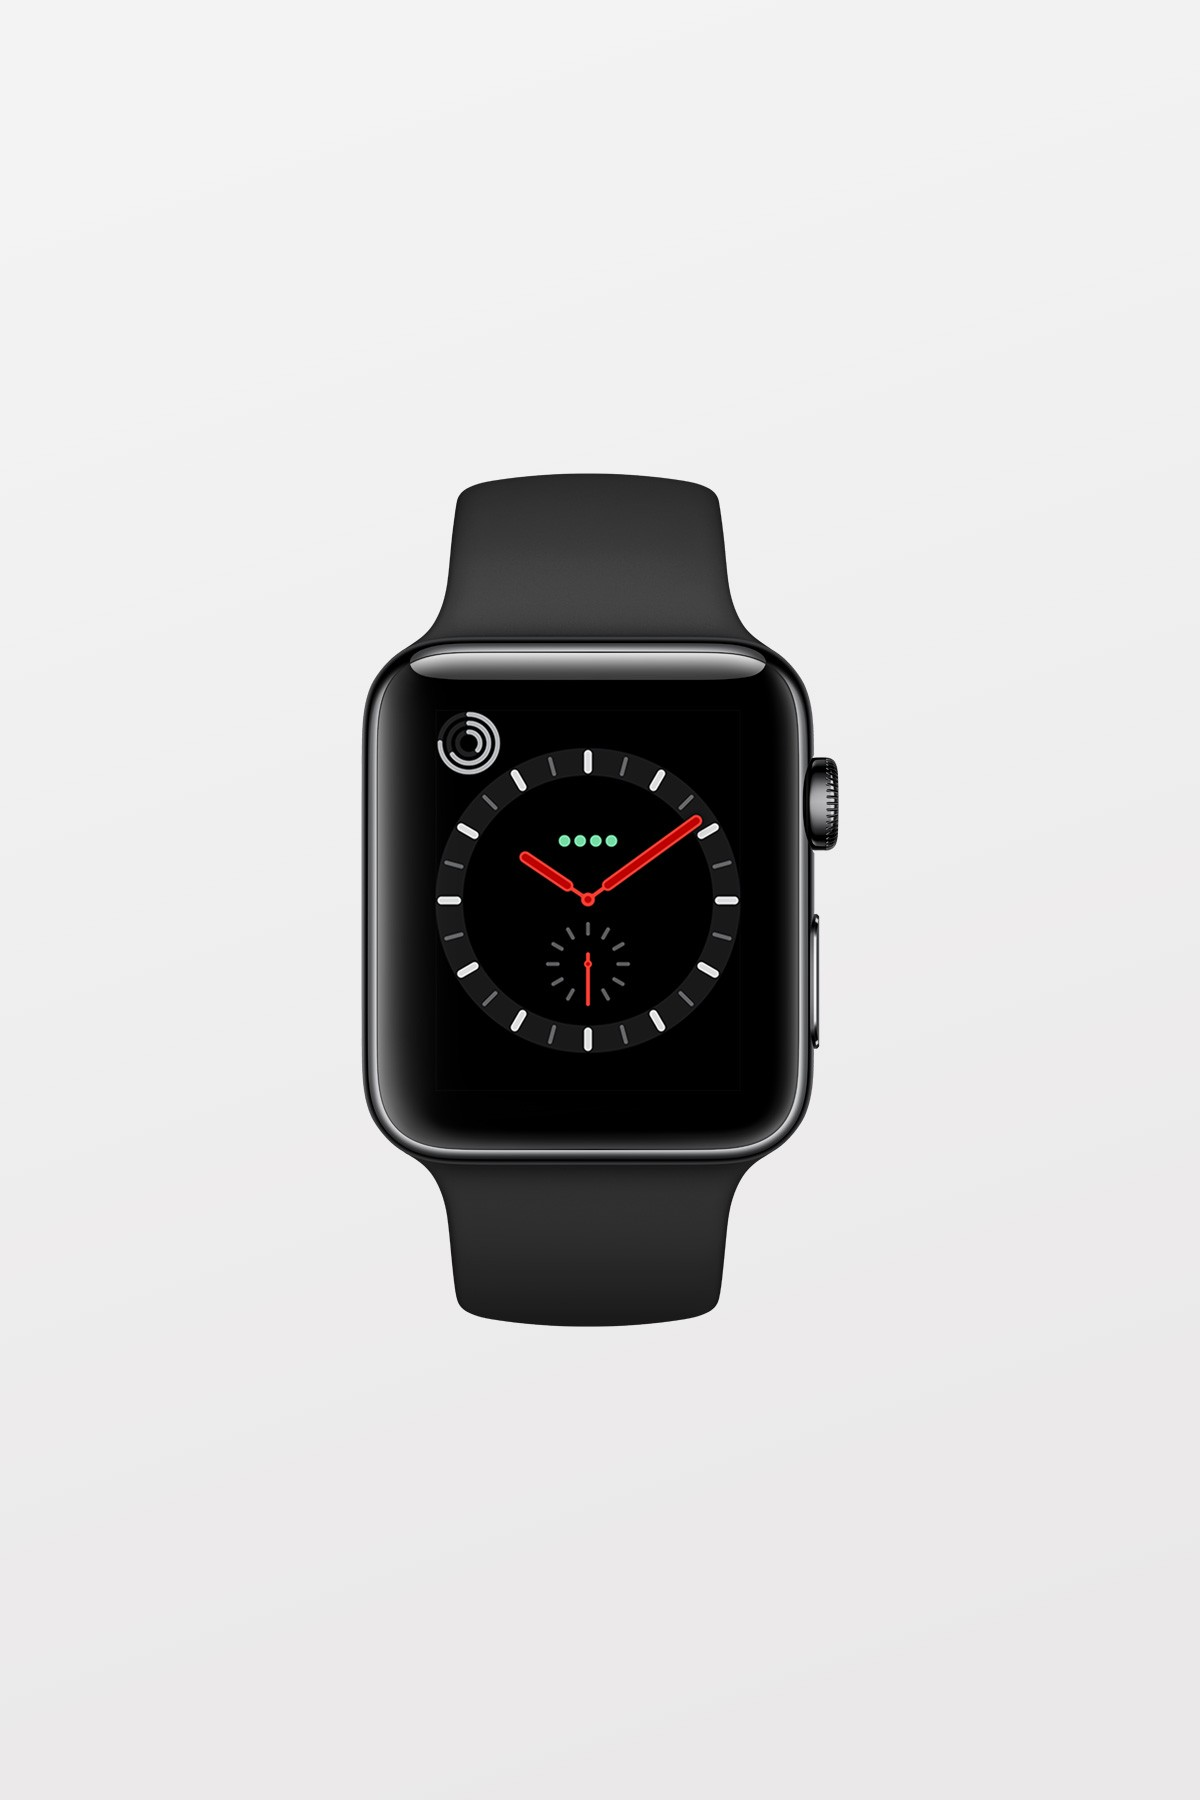 Apple Watch Series 3 GPS + Cellular - 38mm - Space Black Stainless Steel with Black Sport Band